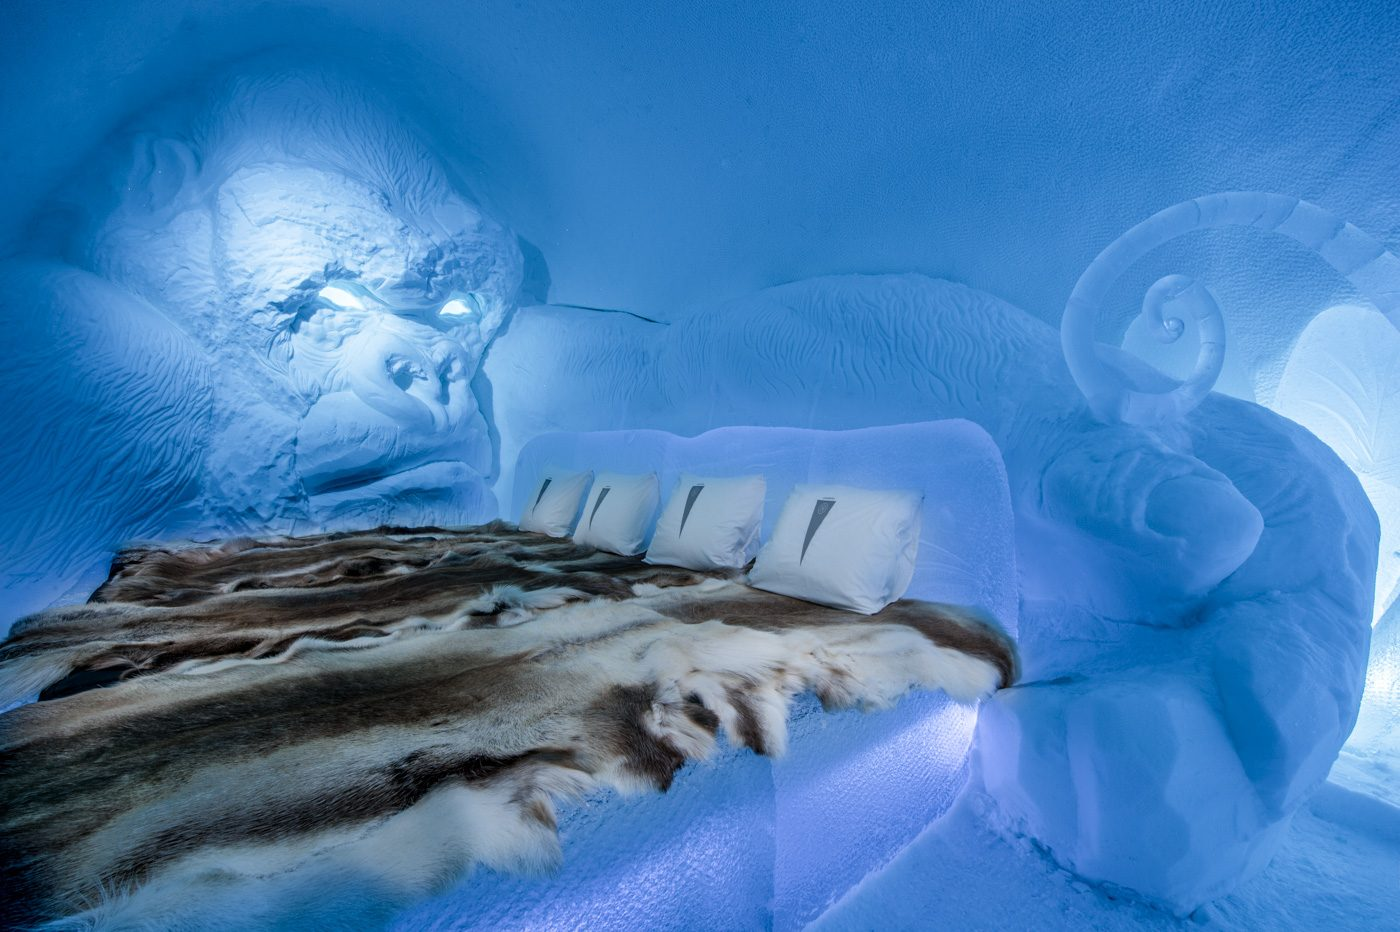 art-suite-king-kong-icehotel-28-1400x932.jpg